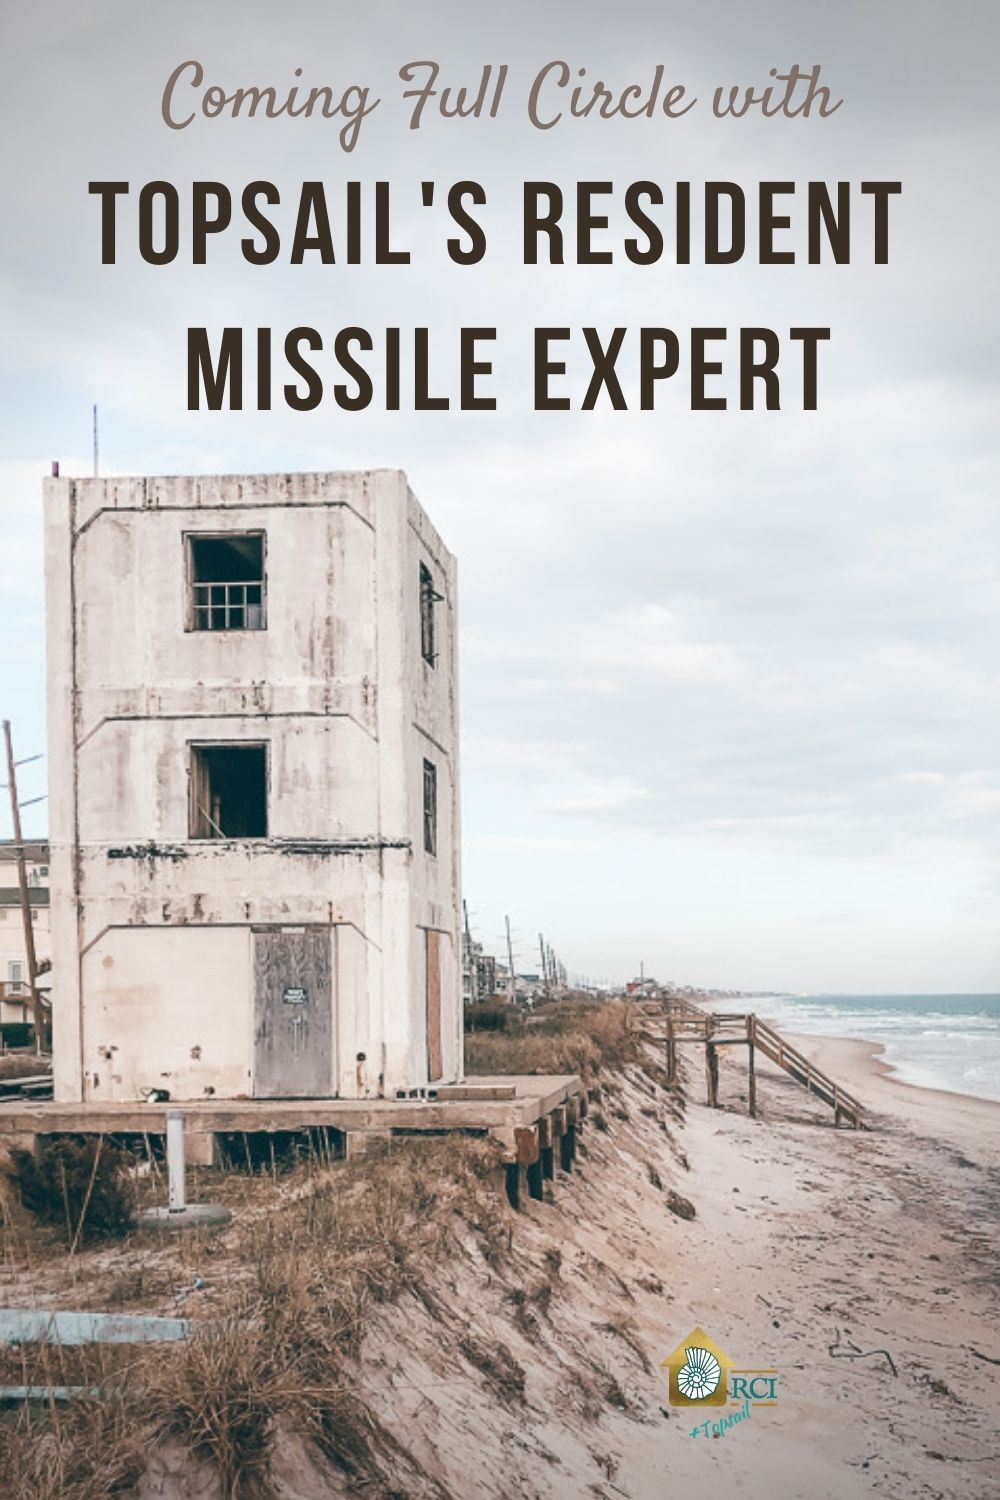 Topsail Resident Missile Expert - RCI Plus Topsail